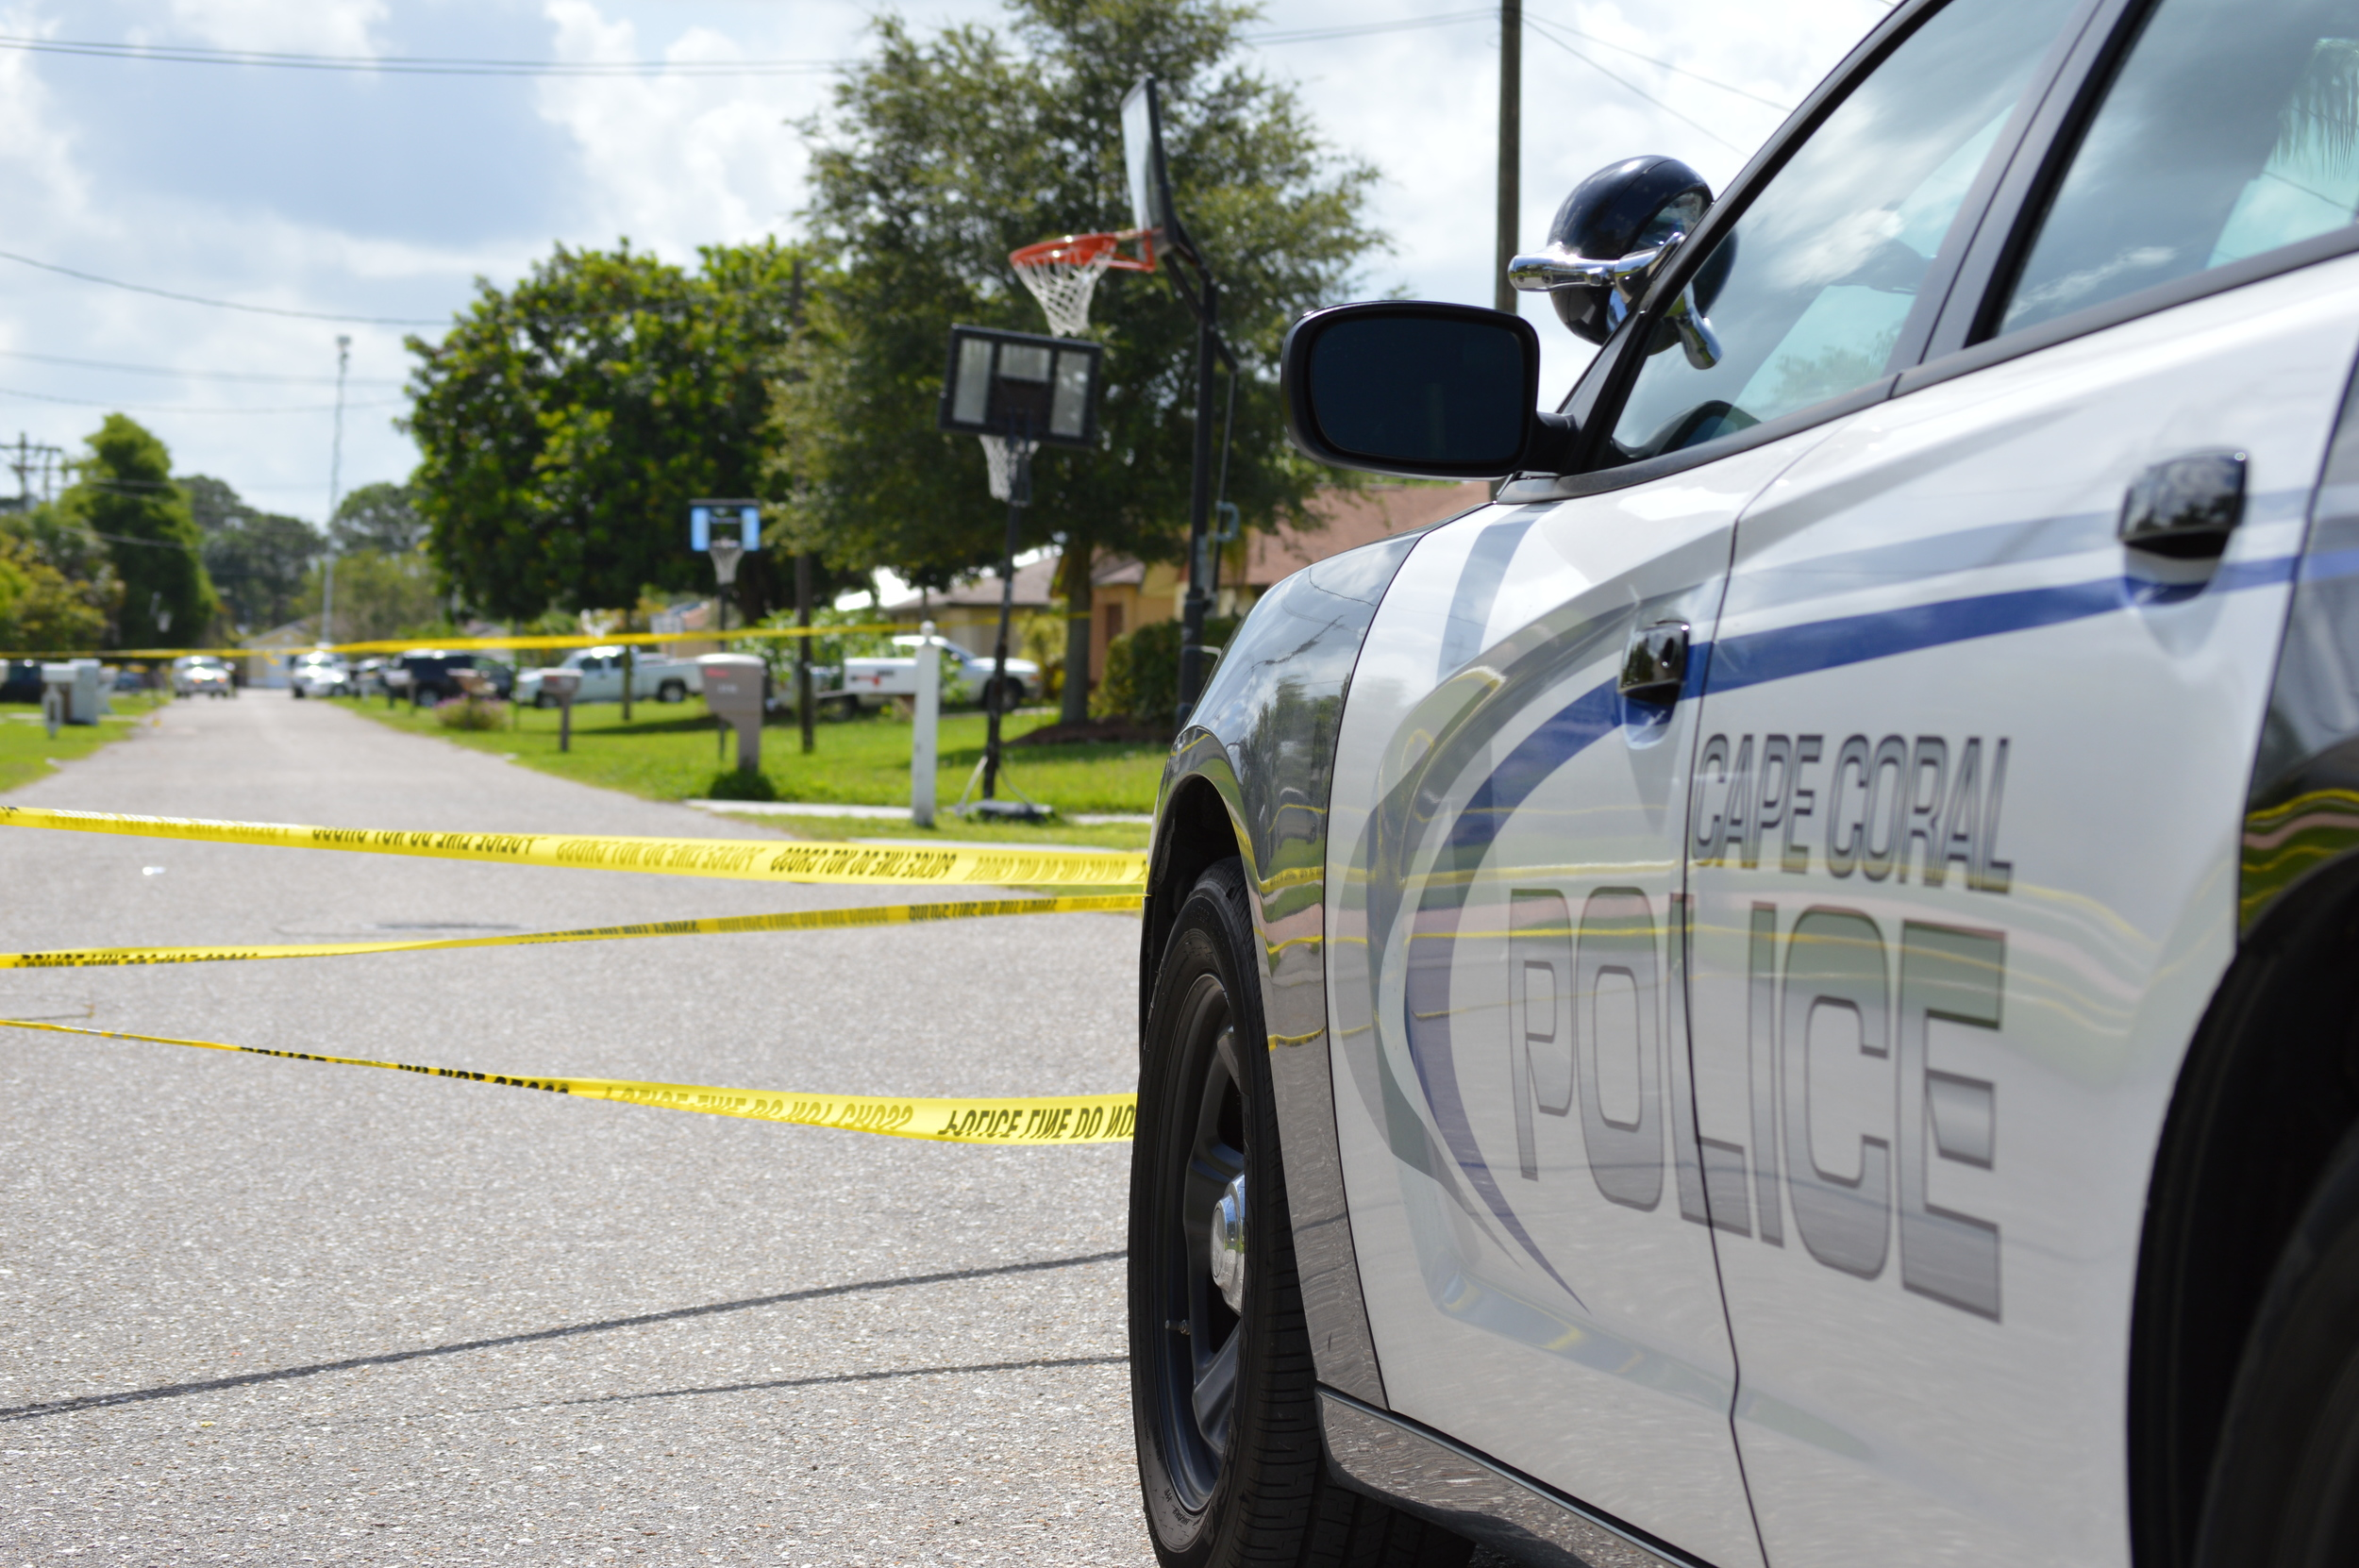 PHOTO: A Cape Coral Police Department patrol car guards an entry point to a taped-off crime scene in a residential neighborhood. Yellow crime scene tape blows in the breeze in front of the marked cruiser. (Photo Courtesy of Cape Coral Police Department)